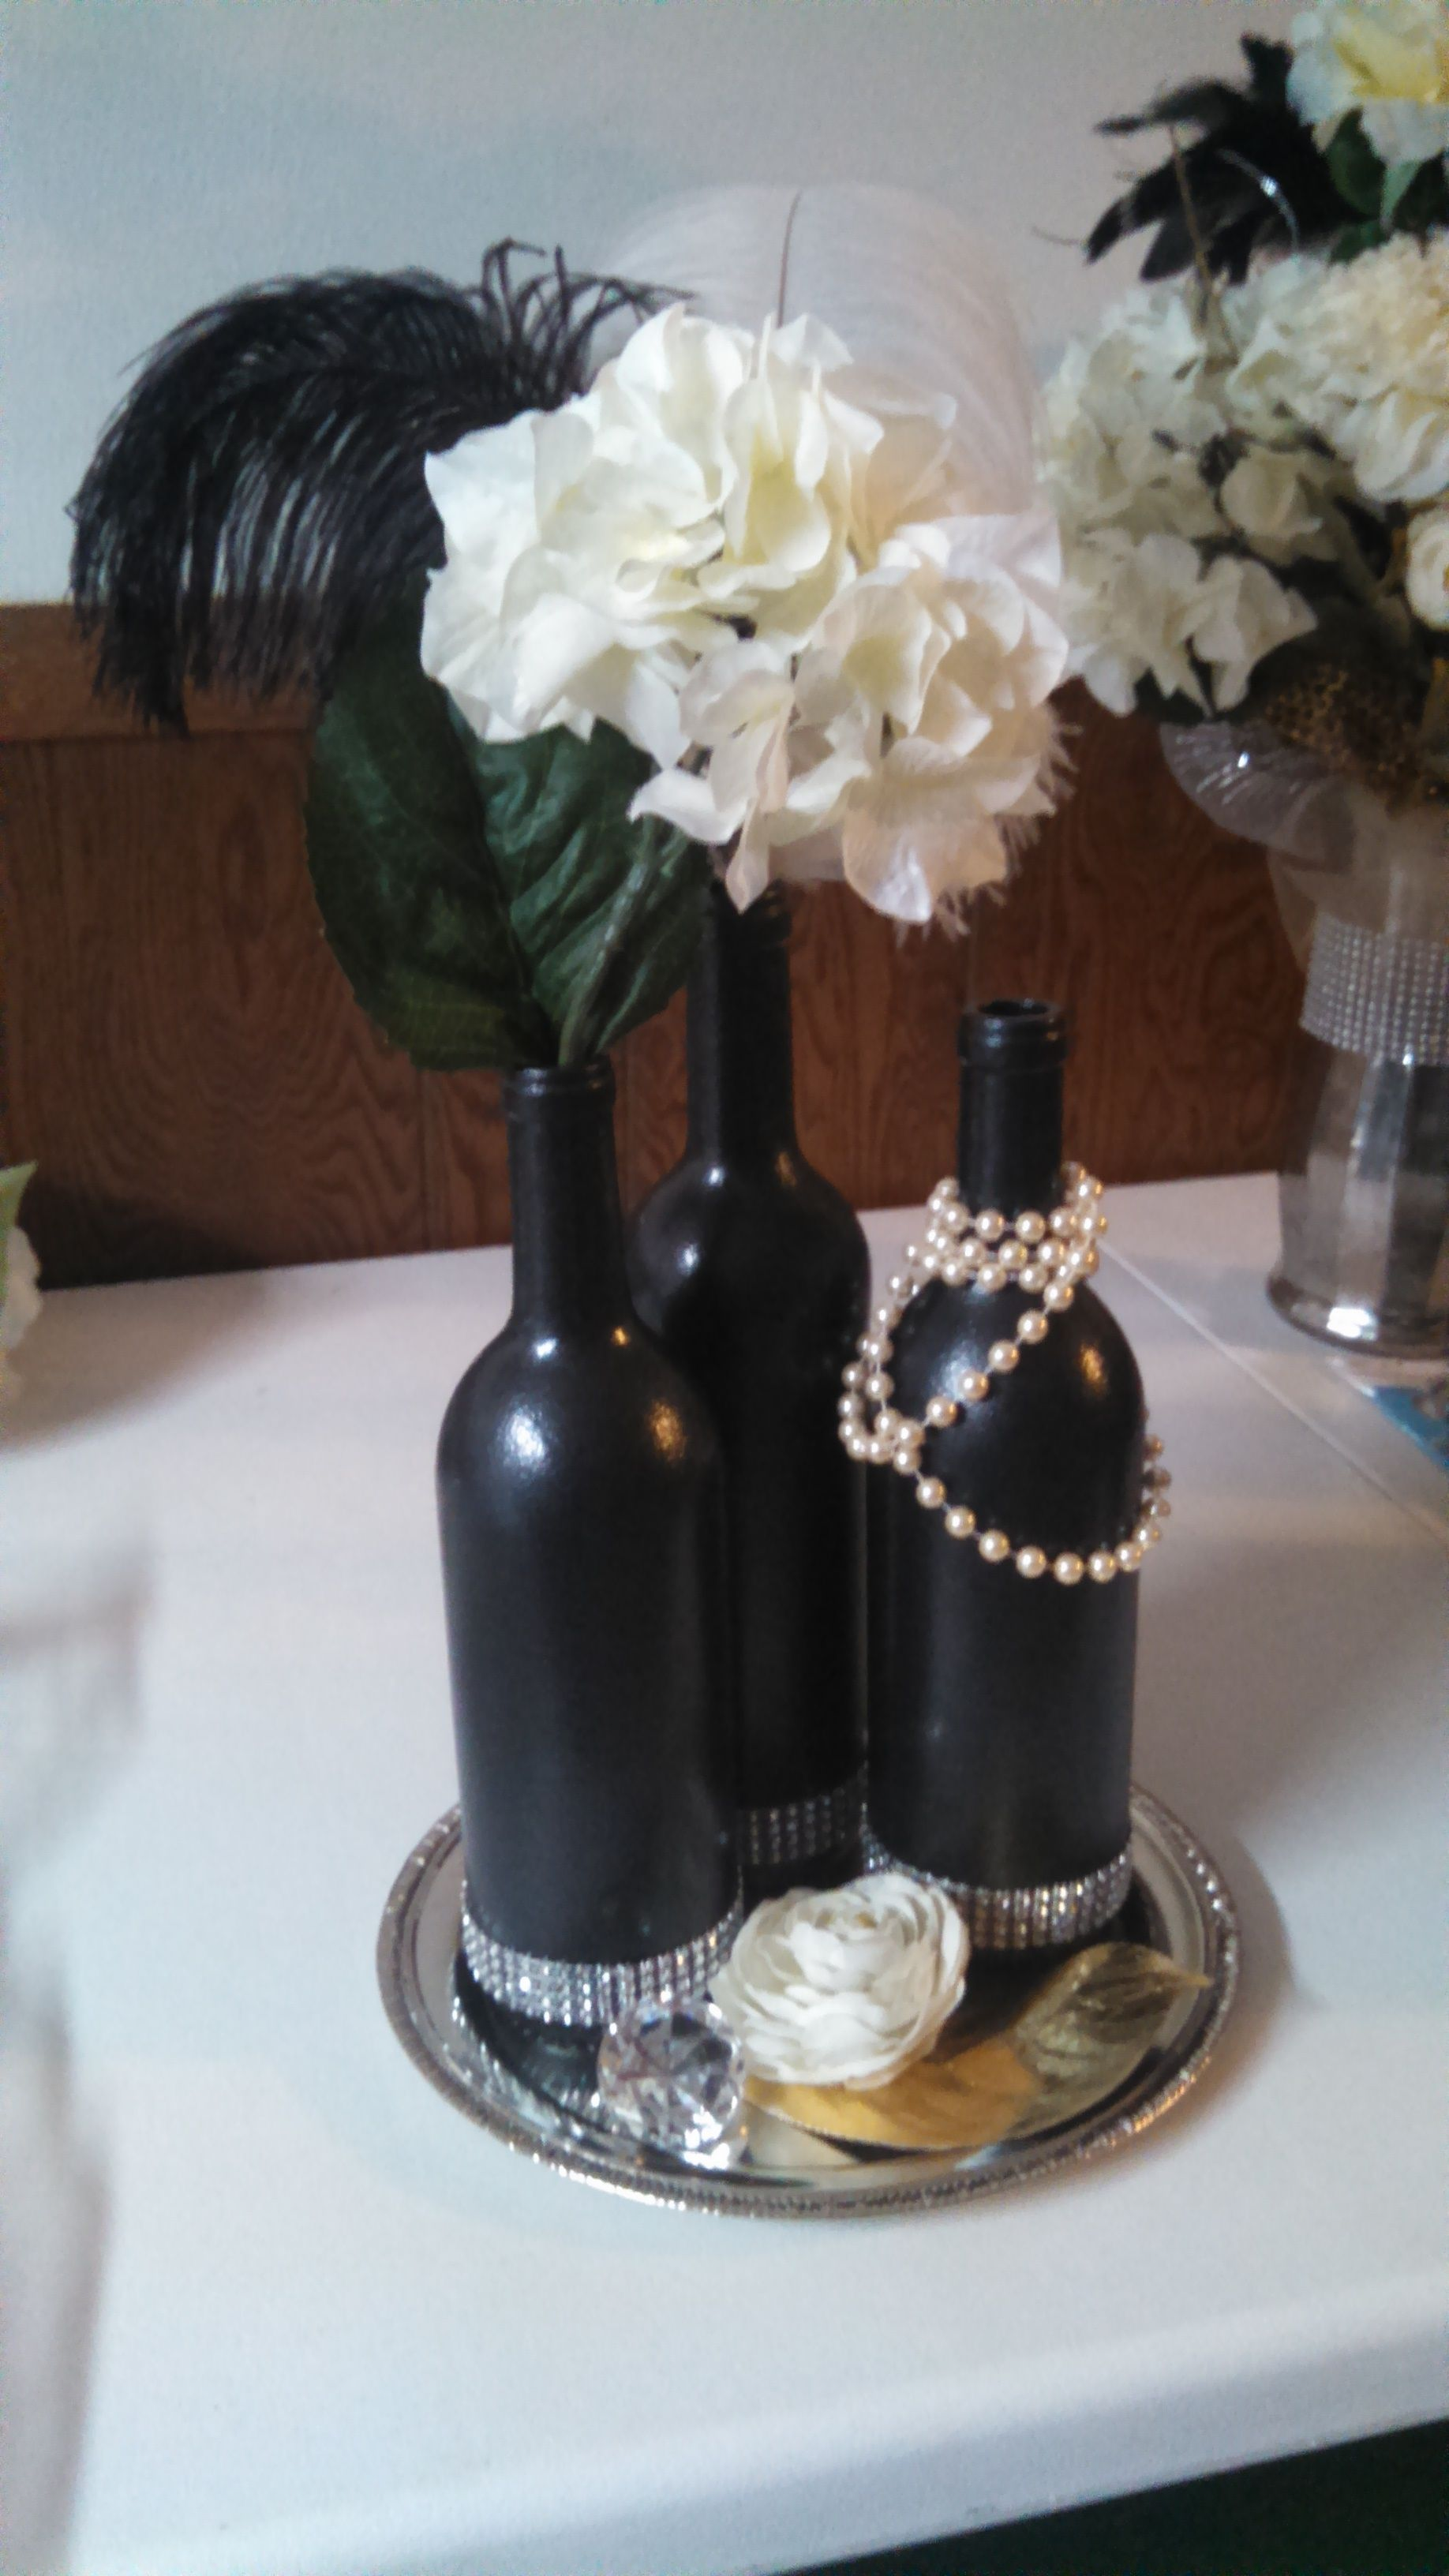 For sale wine bottle arrangement available each